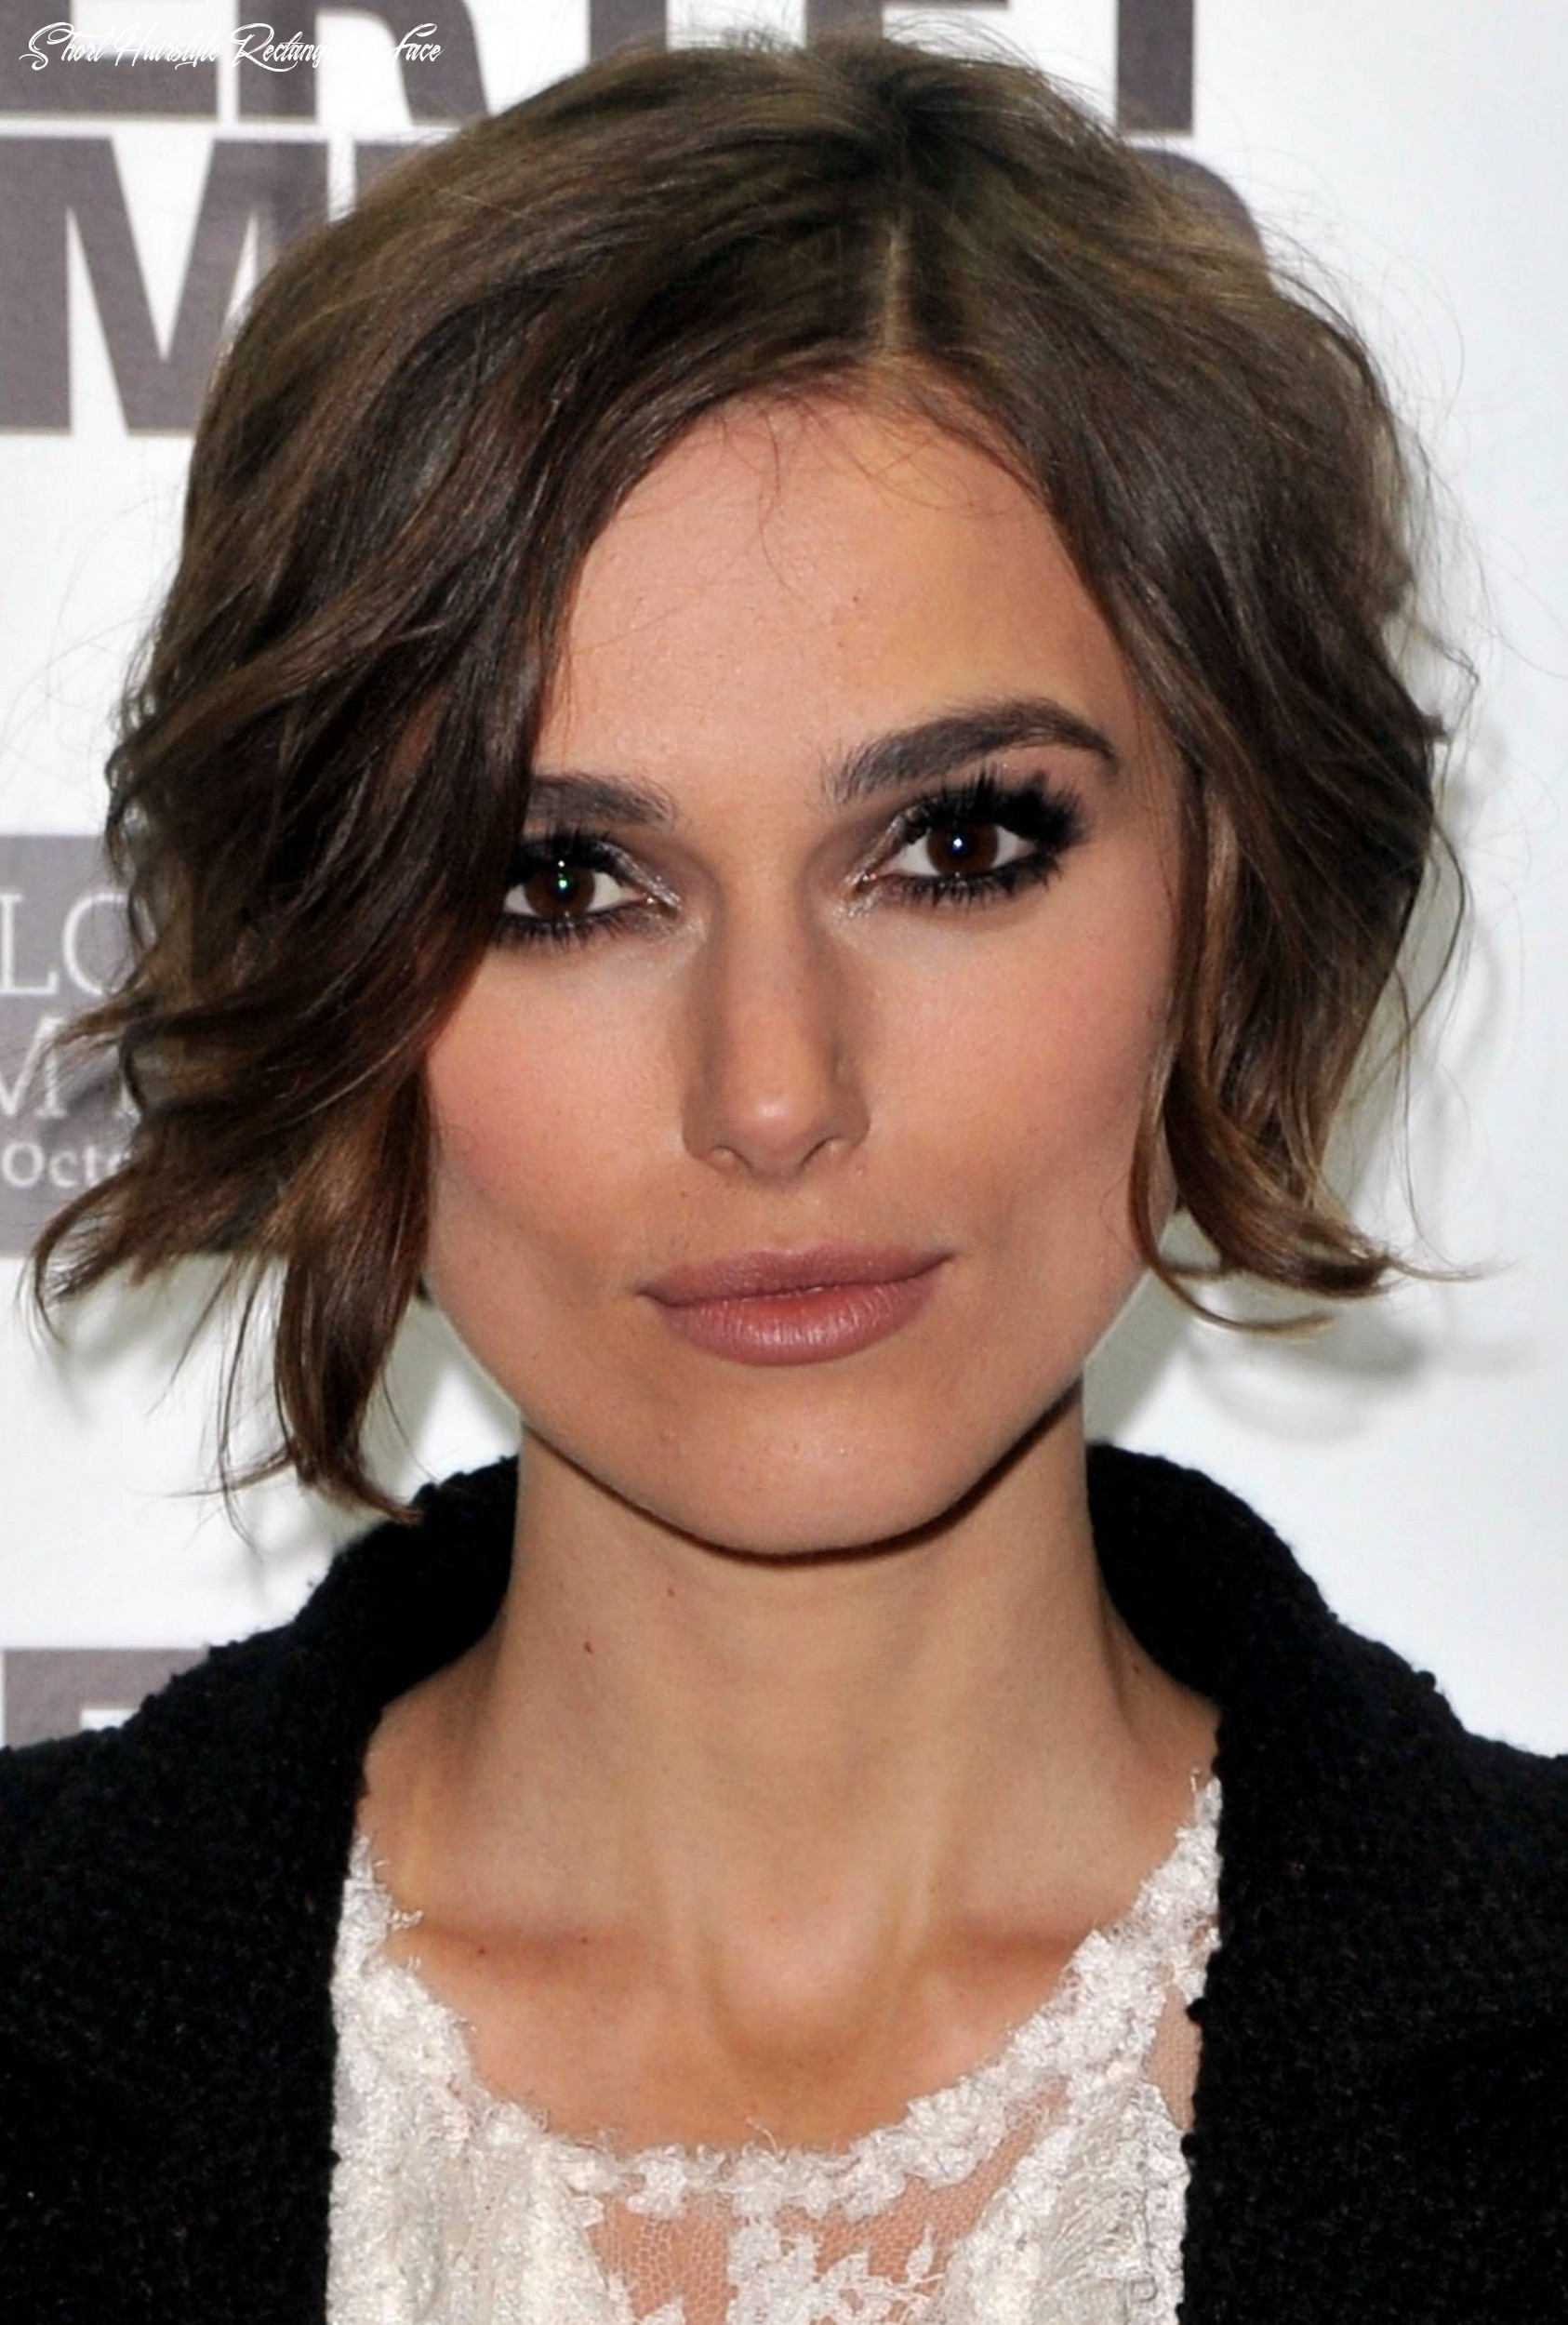 8 inspiring short haircuts for every face shape | square face